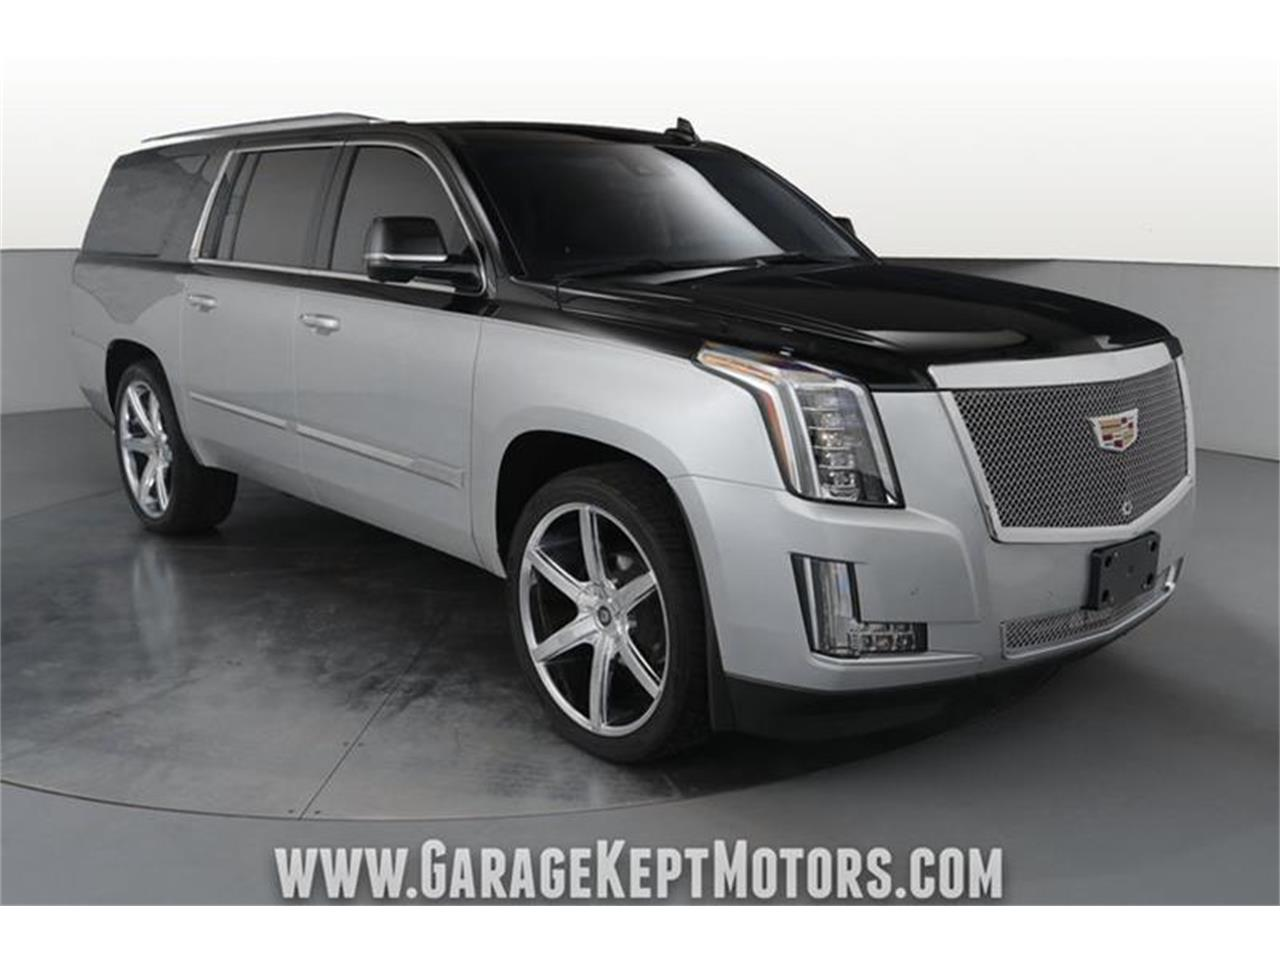 2015 Cadillac Escalade for sale in Grand Rapids, MI – photo 62